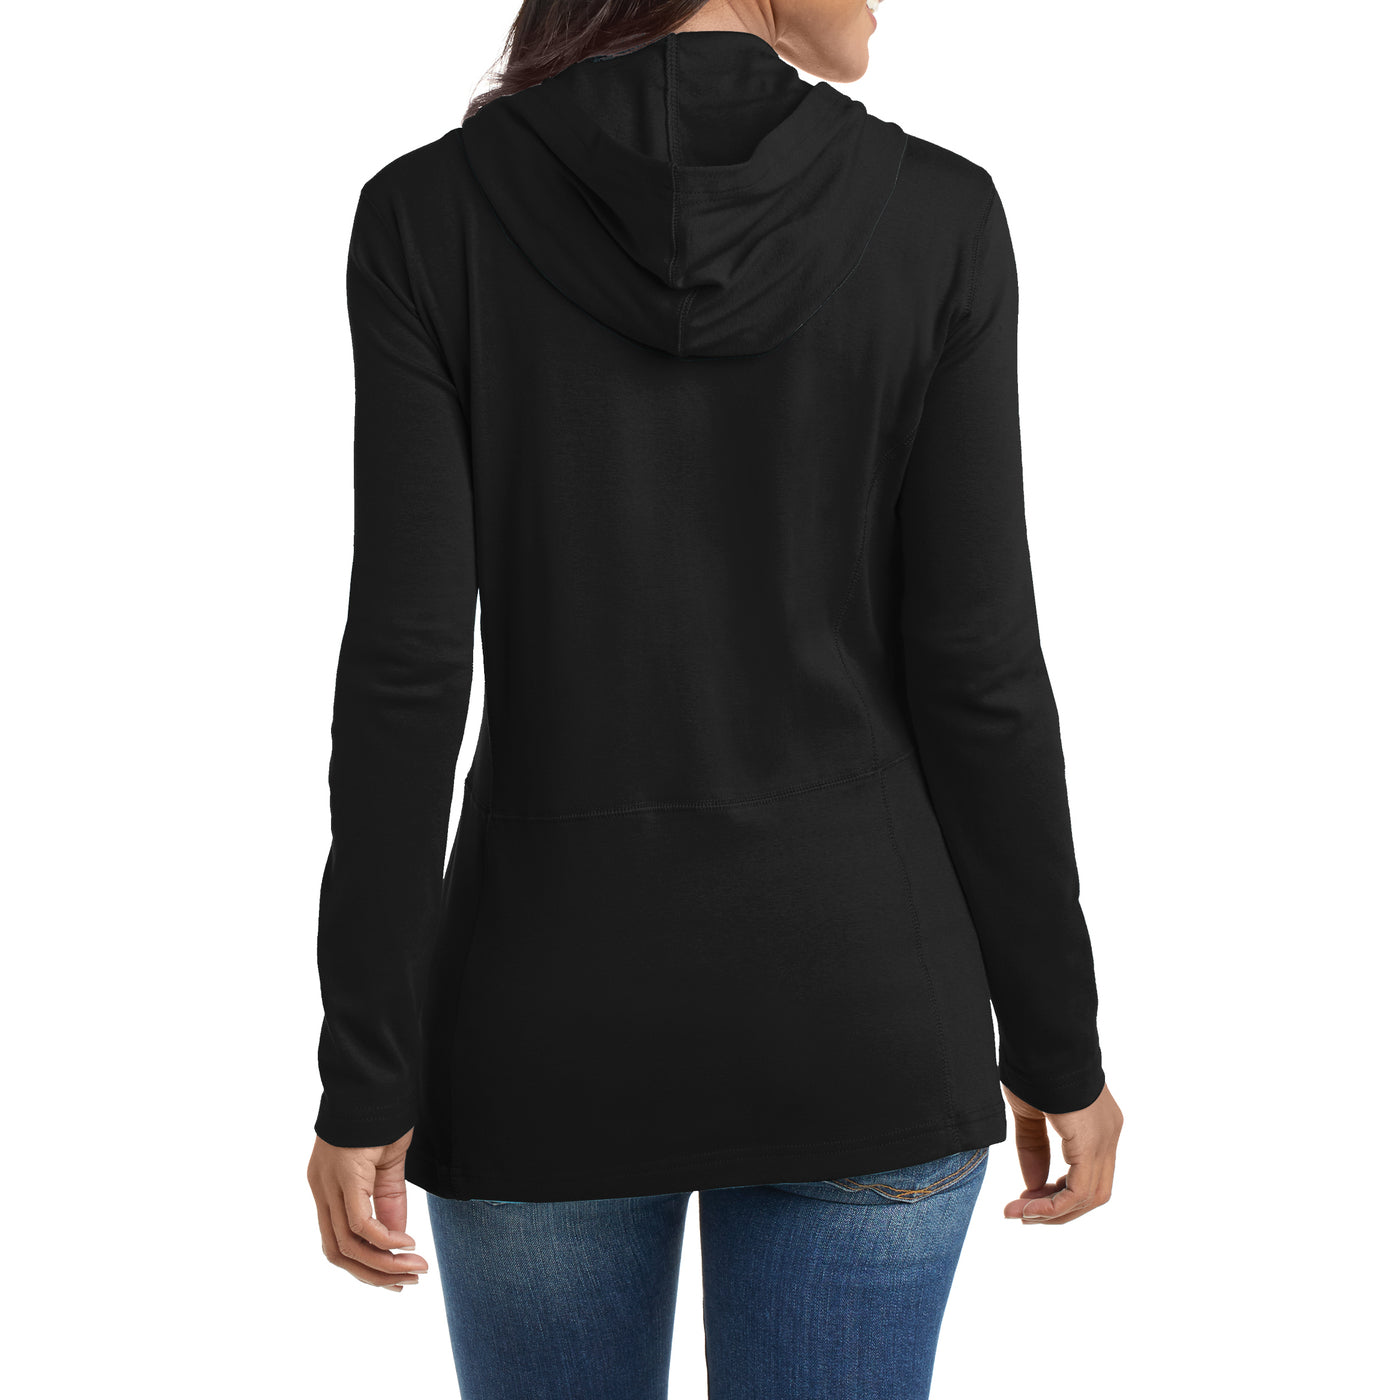 Women's Modern Stretch Cotton Full-Zip Jacket - Black - Back